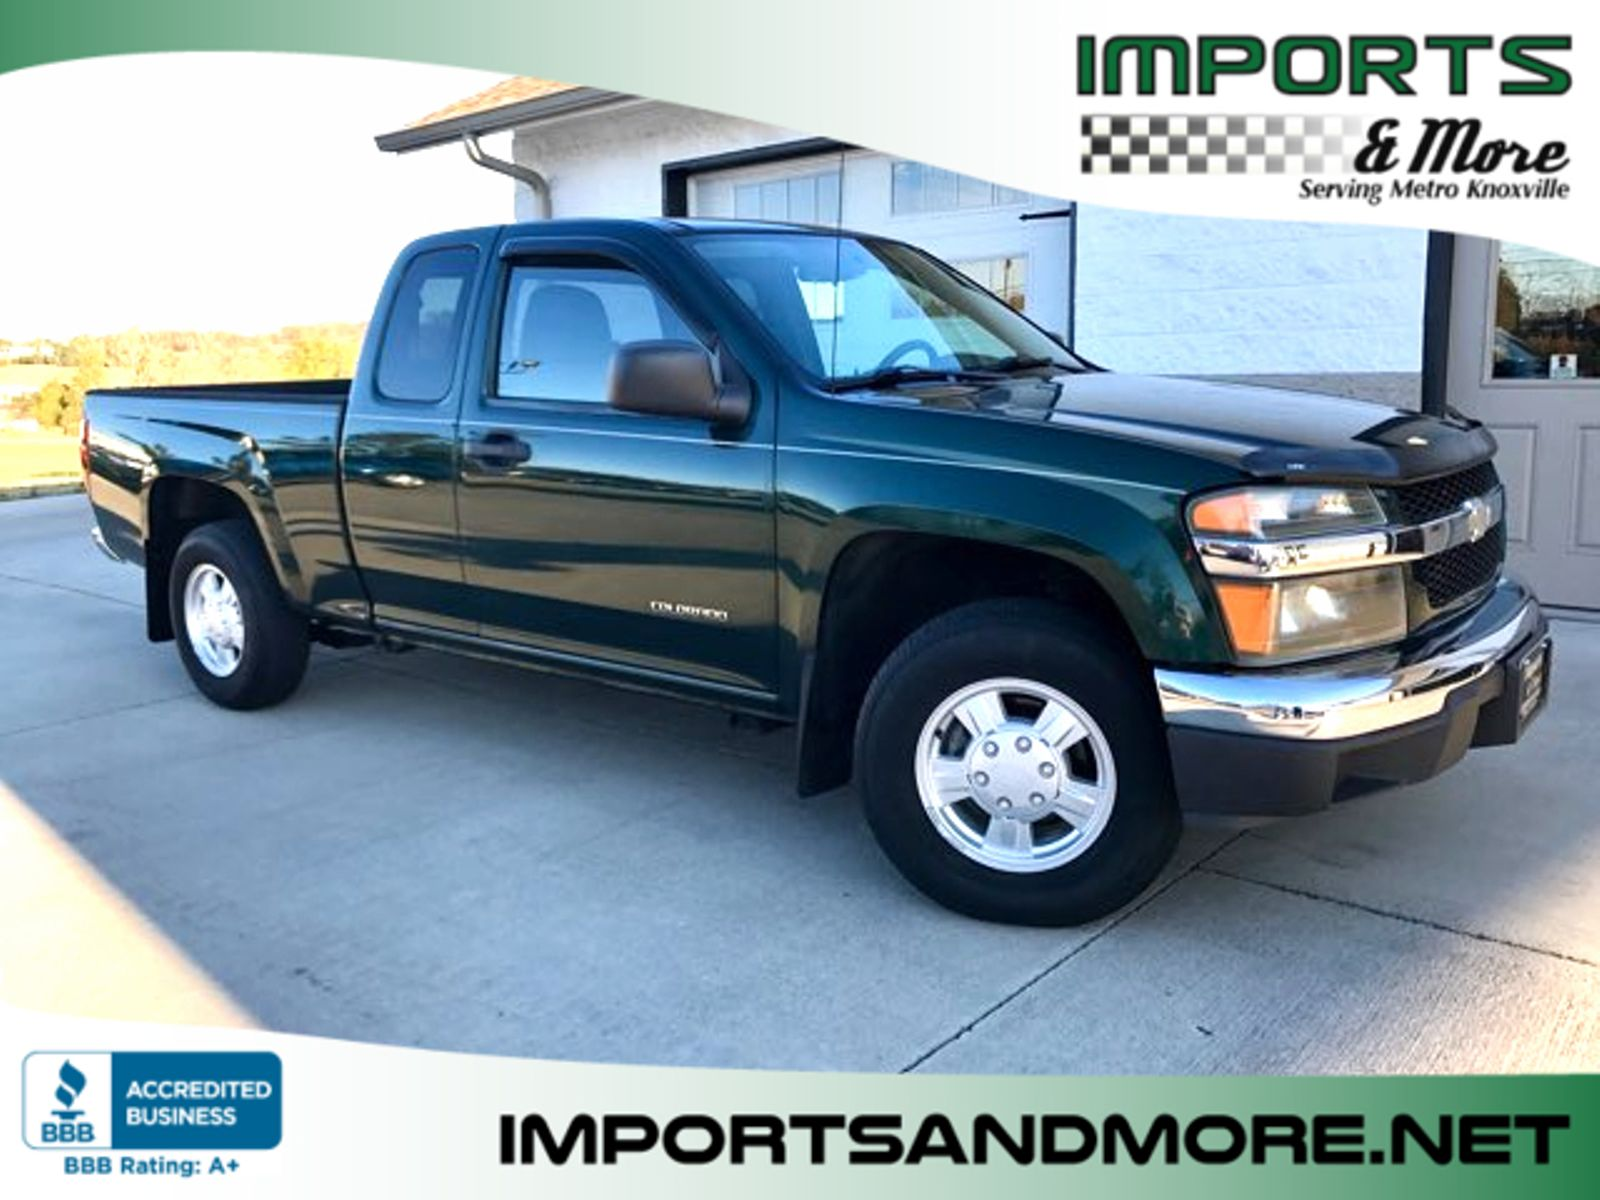 2004 chevrolet colorado ls extended cab imports and more inc